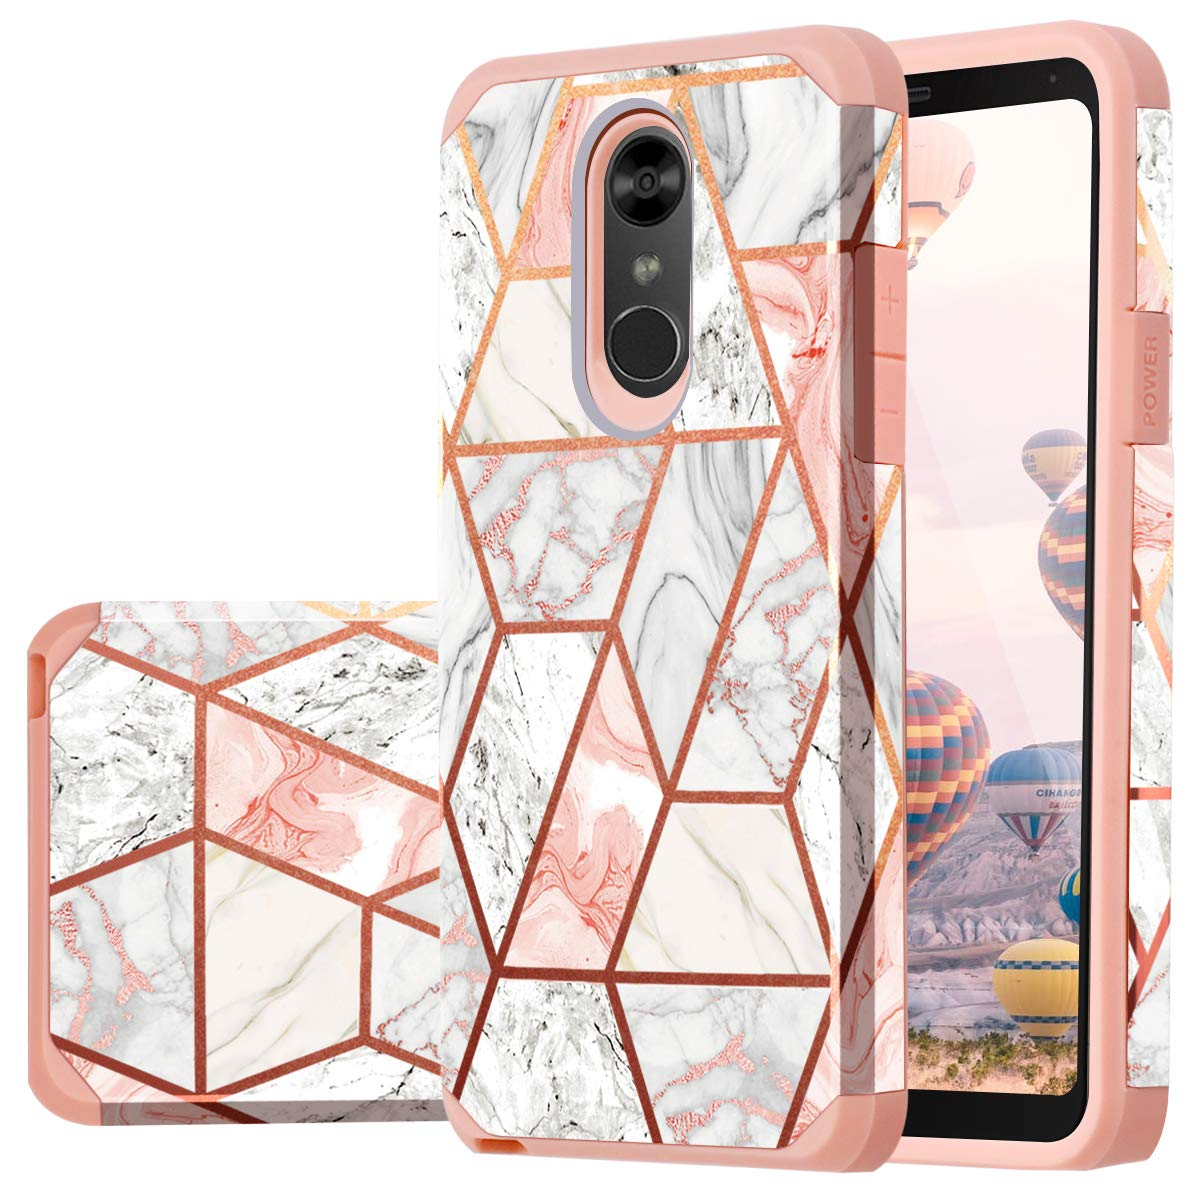 Fingic LG Stylo 4 Case, LG Stylus 4 Case, LG Stylo 4 Plus Case,LG Q Stylus Case, Rose Gold Marble Design Glitter Bumper Hard PC Soft Rubber Shockproof Protective Phone Case Cover for LG Stylo 4 2018